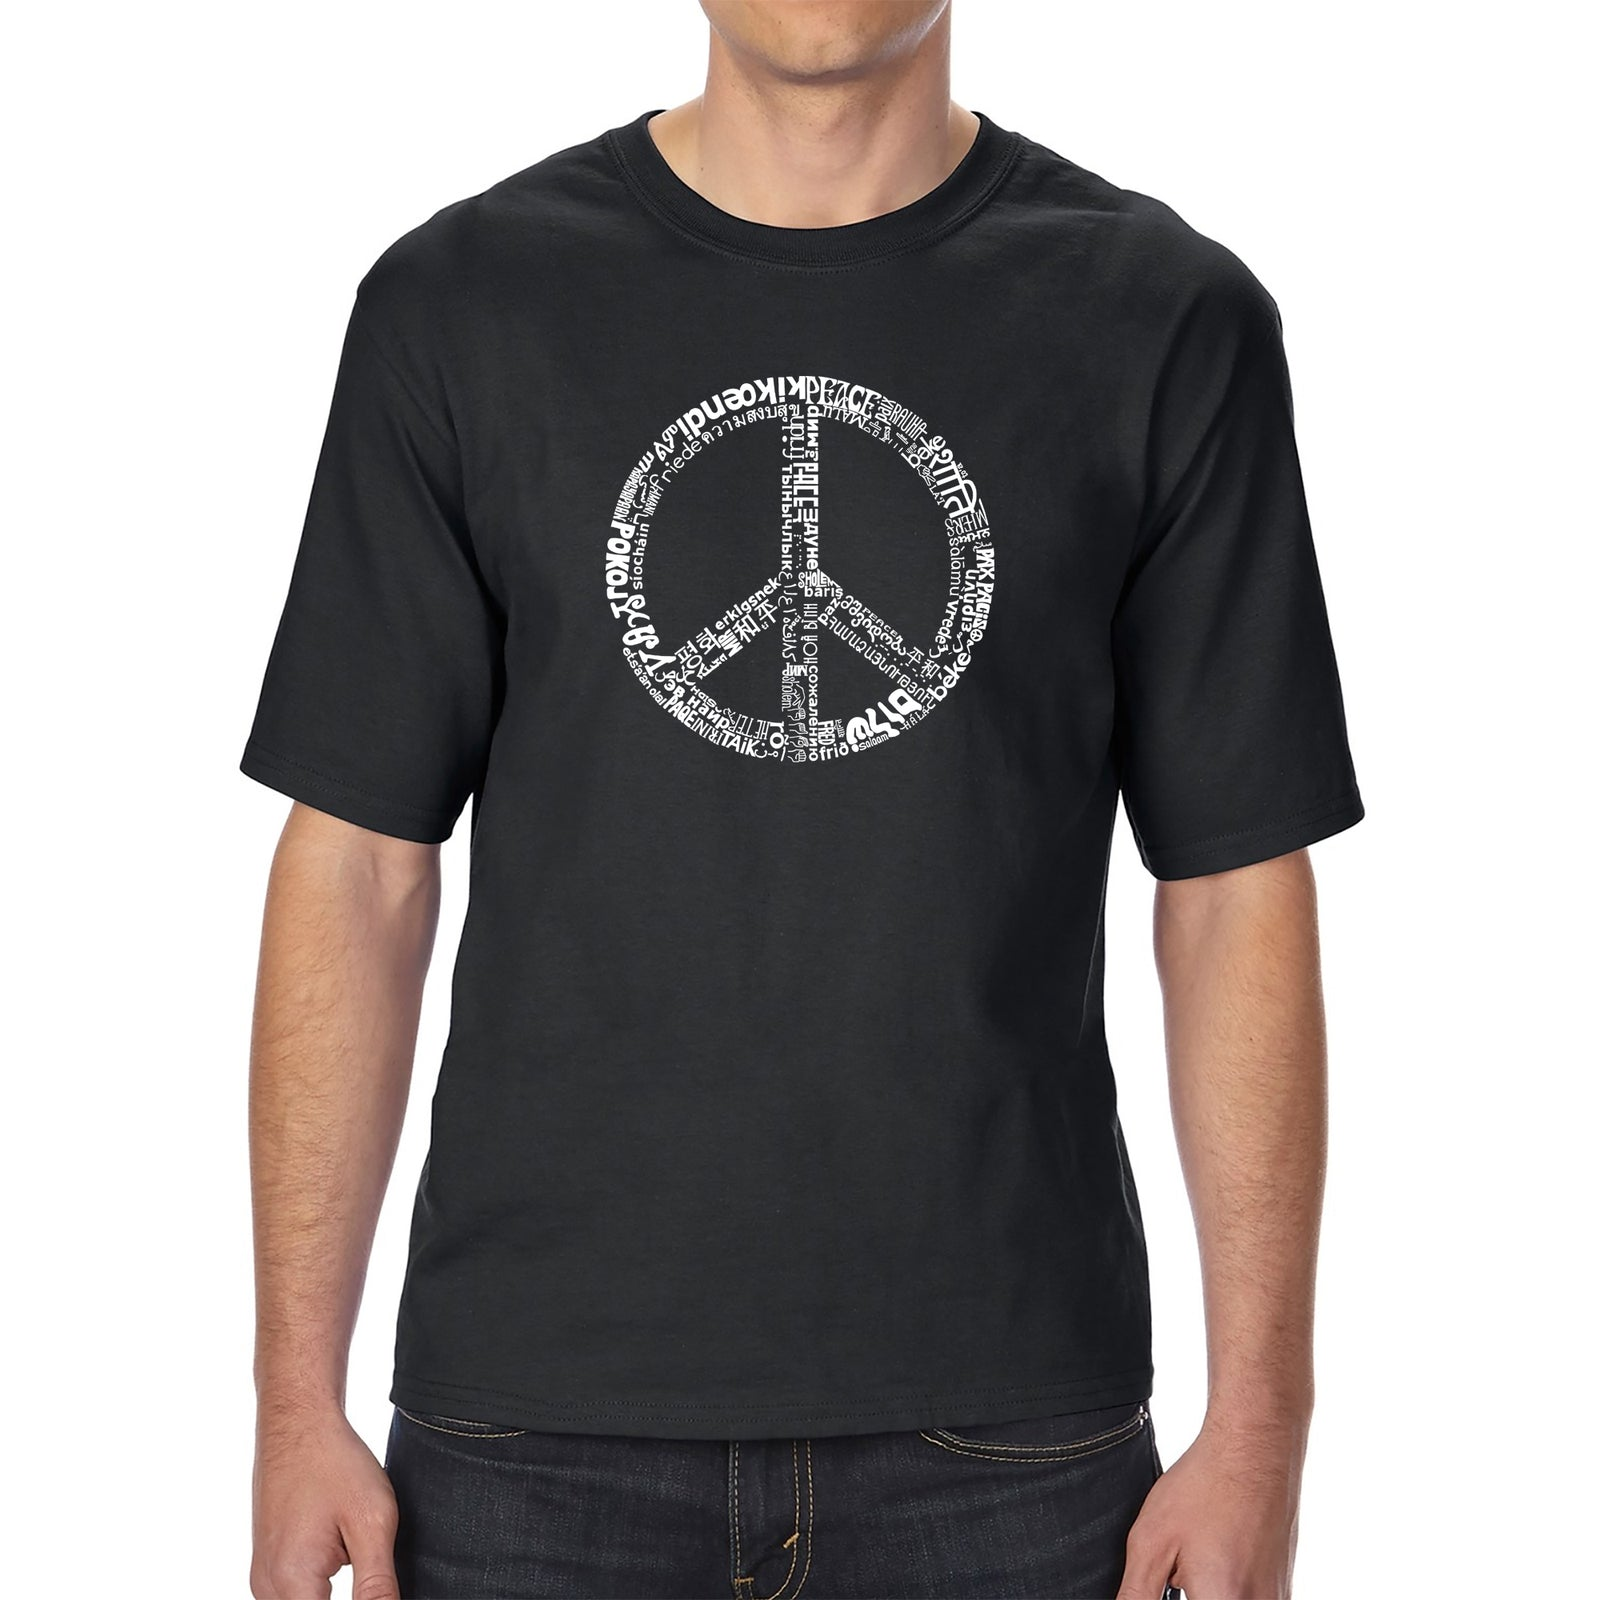 Men's Tall and Long Word Art T-shirt - THE WORD PEACE IN 77 LANGUAGES